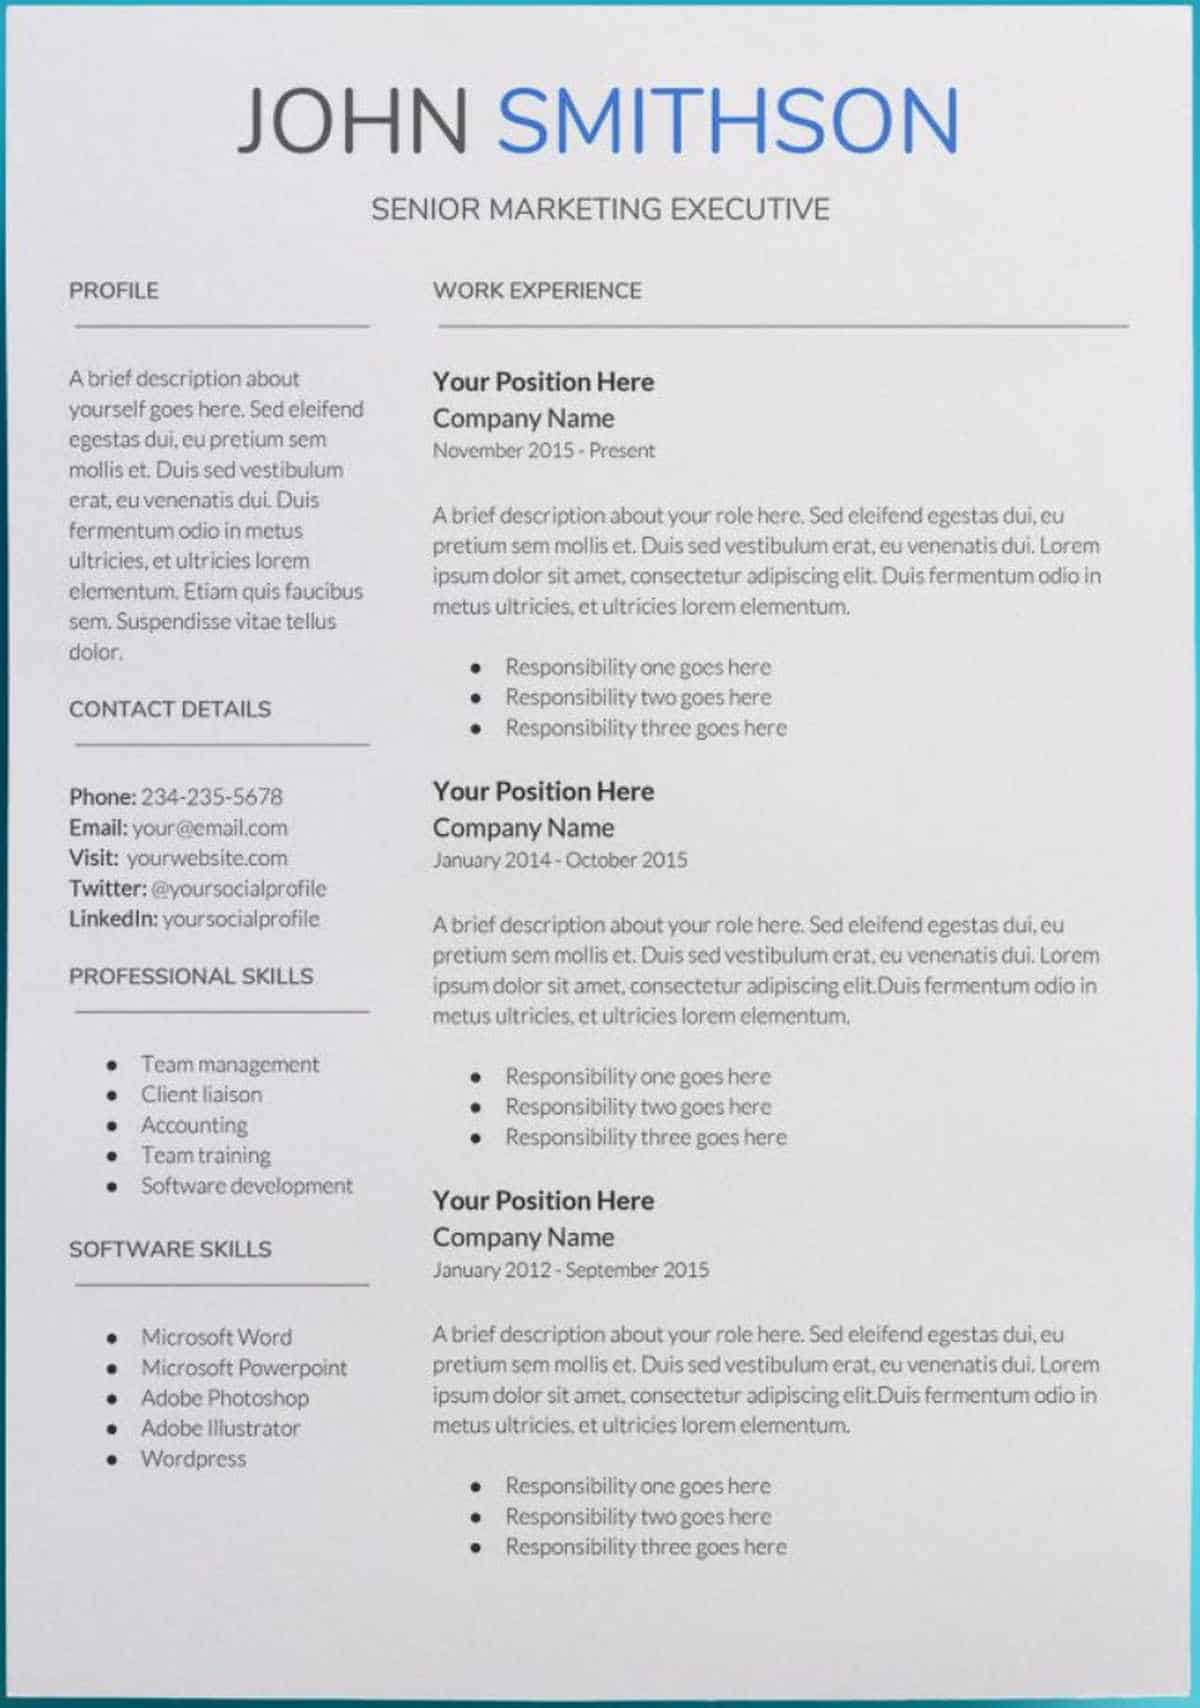 google docs resume templates downloadable pdfs making on saturn template free words for Resume Making A Resume On Google Docs